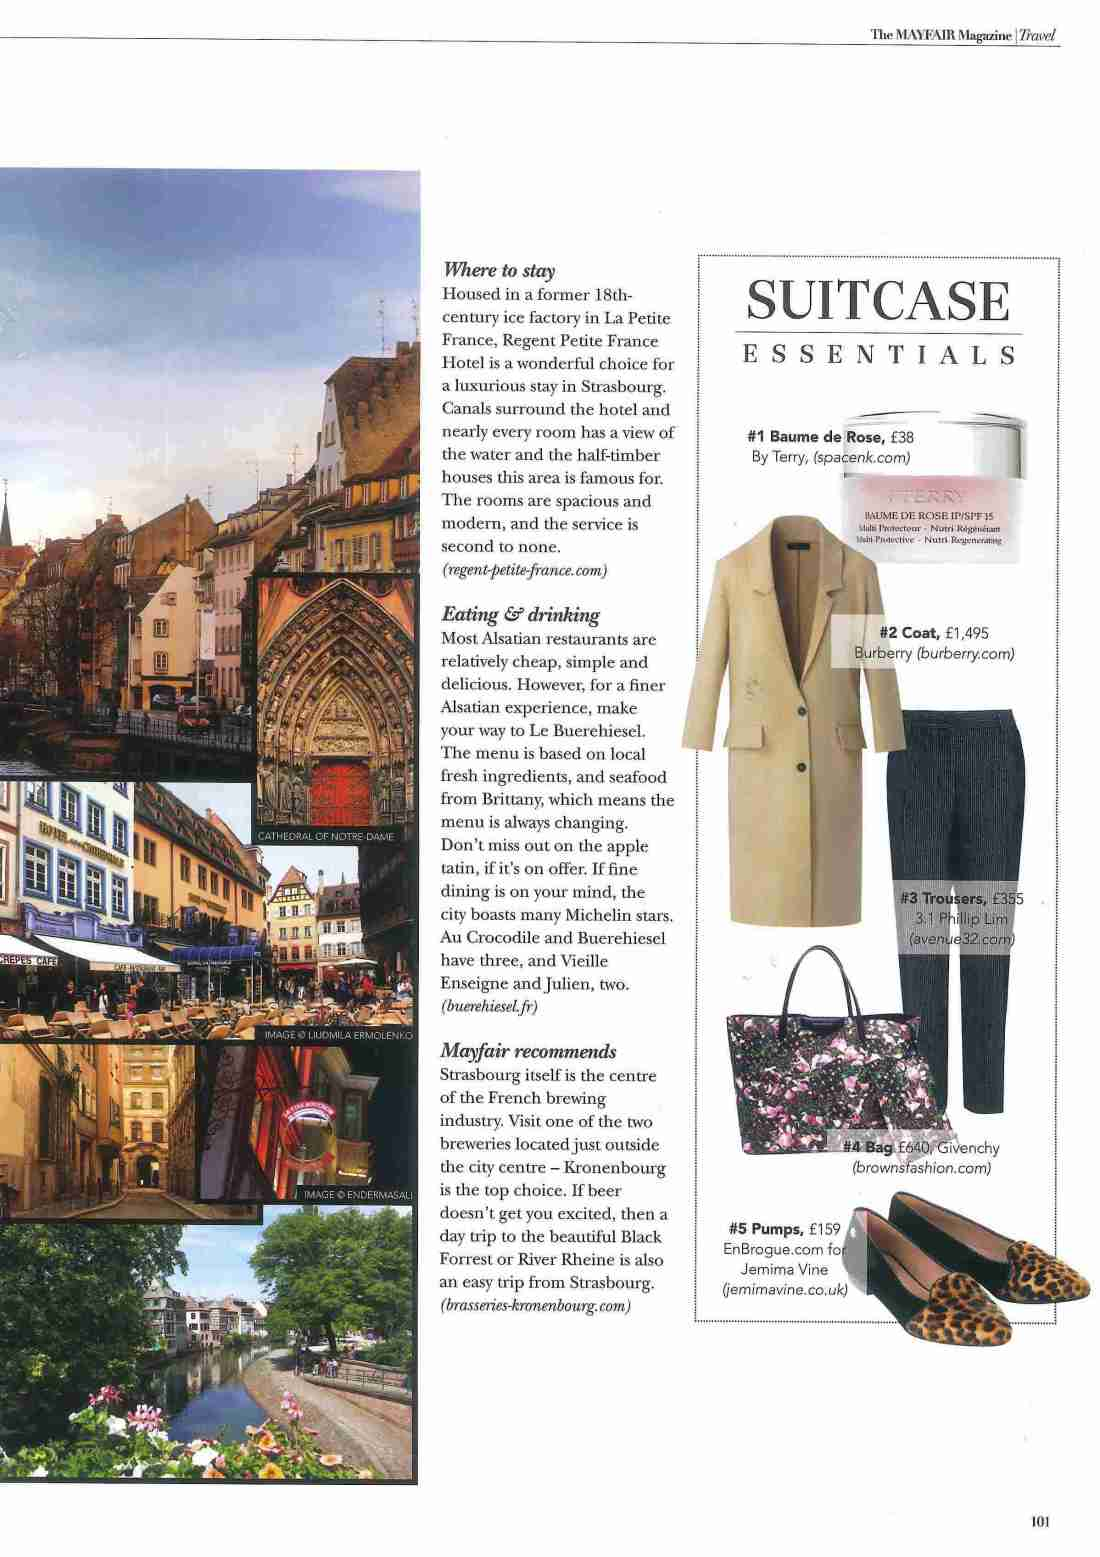 The Mayfair Magazine - April - Coverage